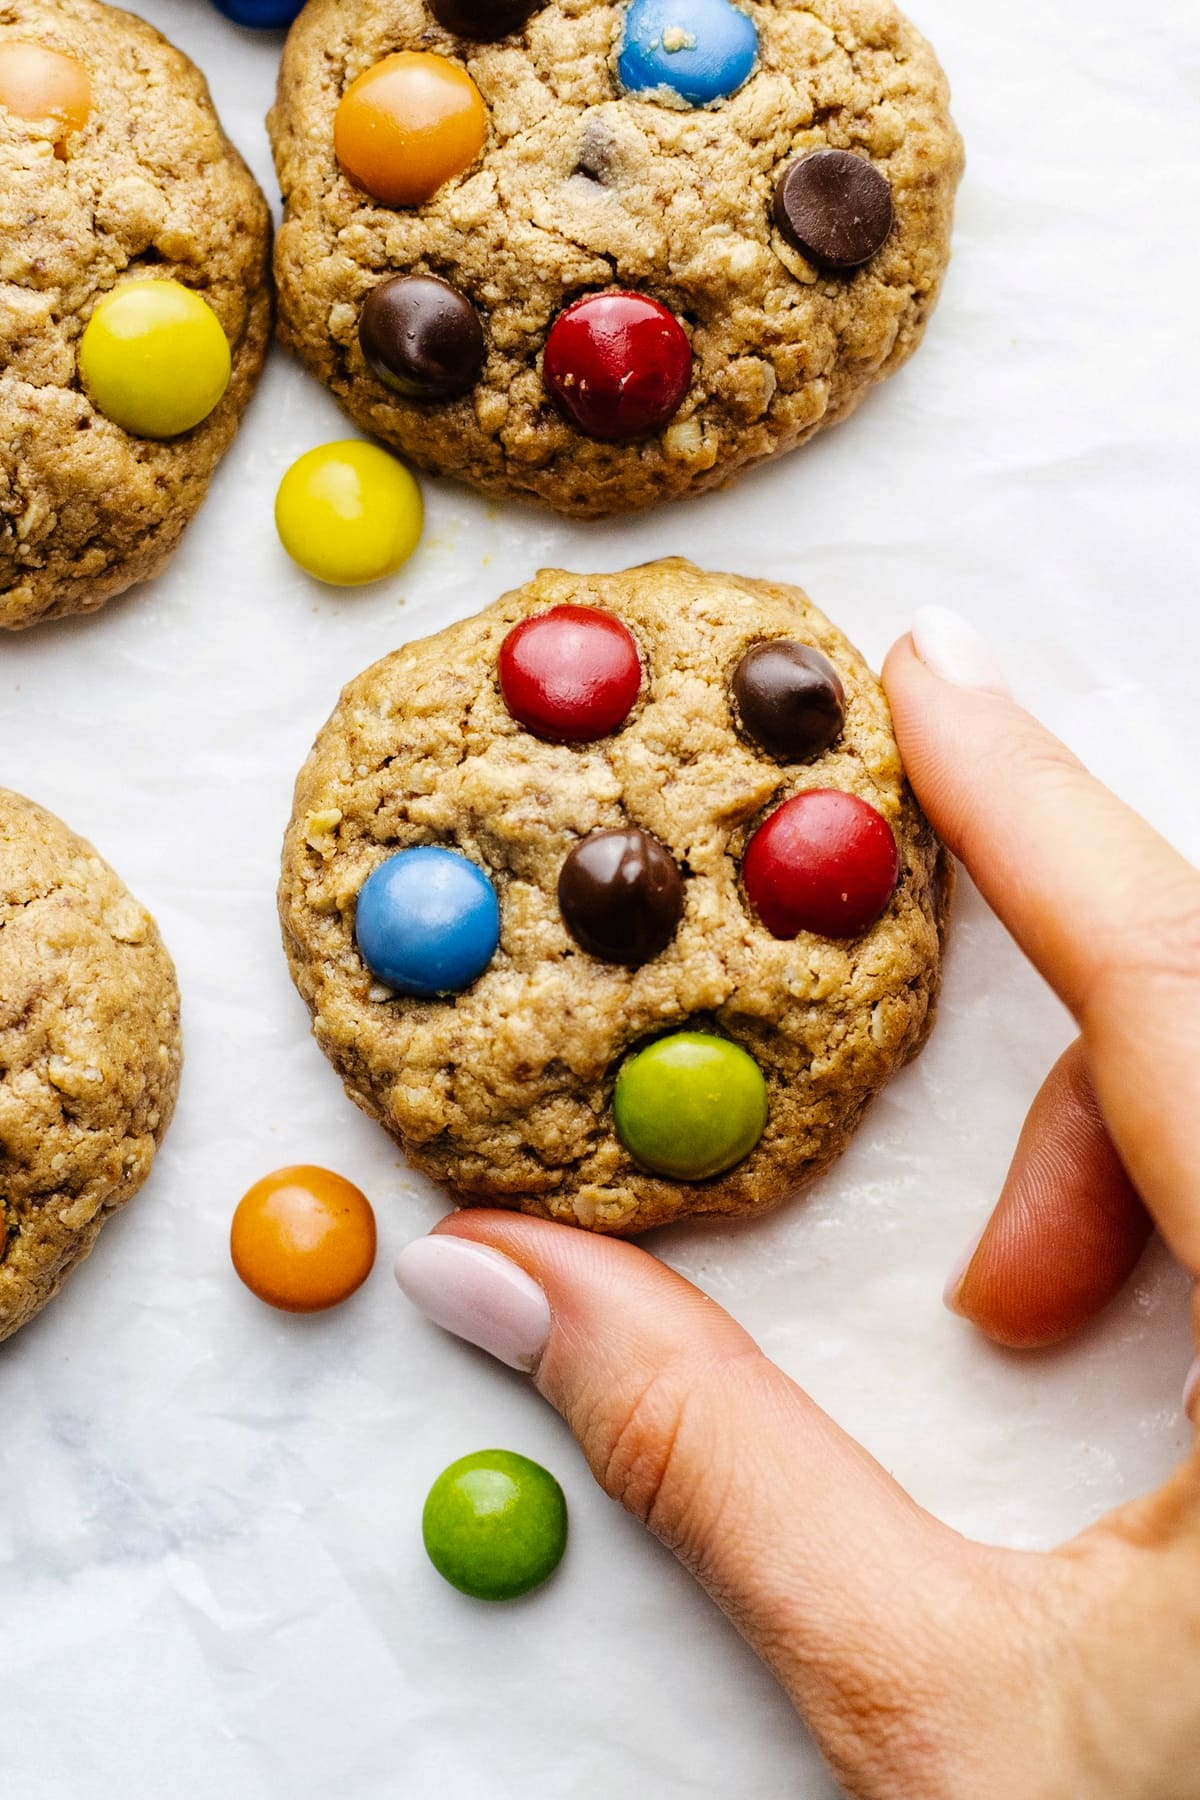 A hand holding a m&m and chocolate chip cookie on a white counter.